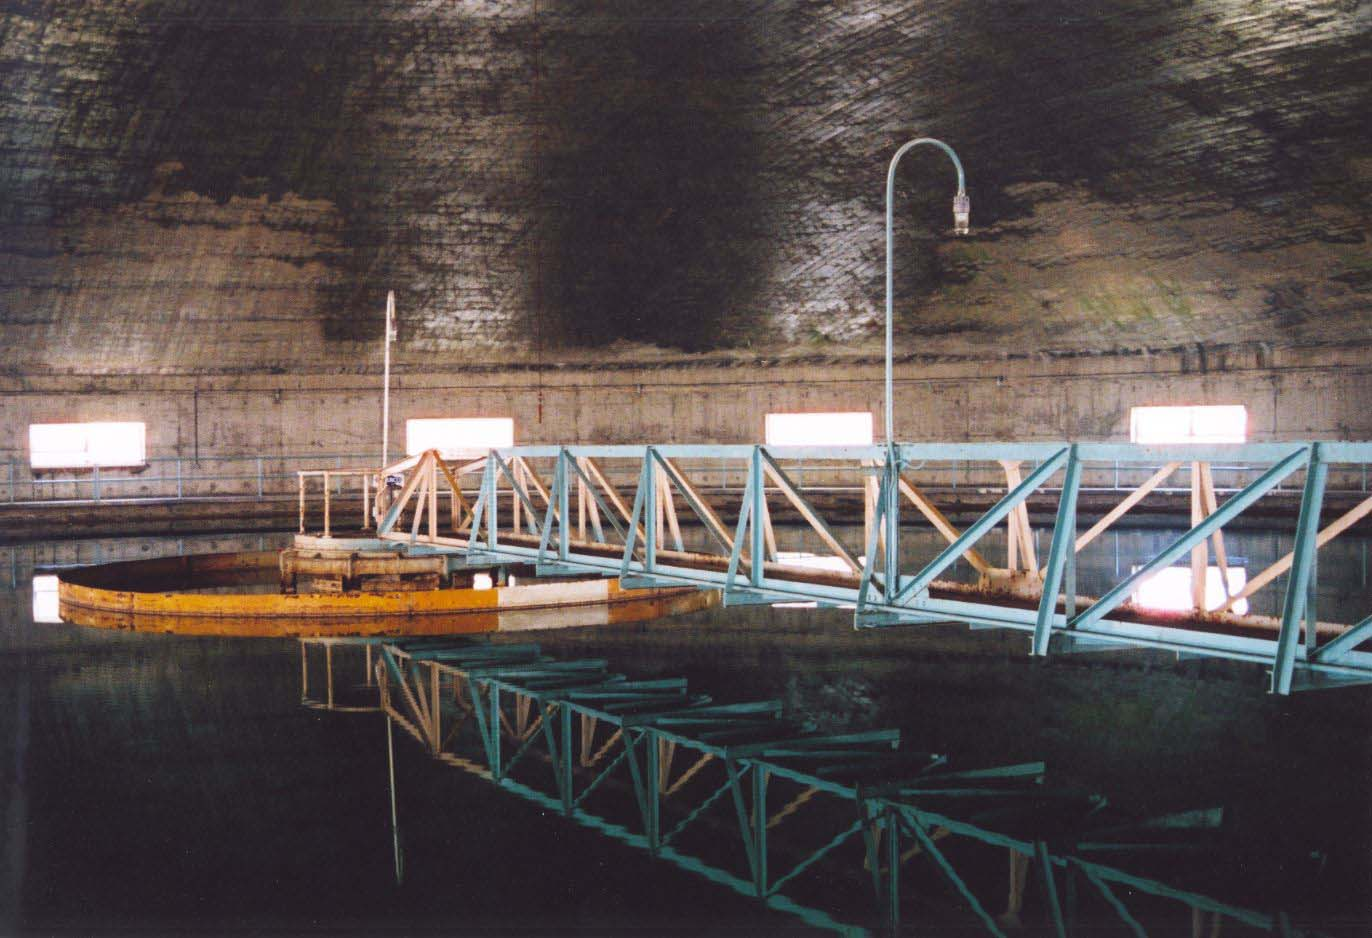 Interior of the round clarifier at Saint Paul Regional Water Services